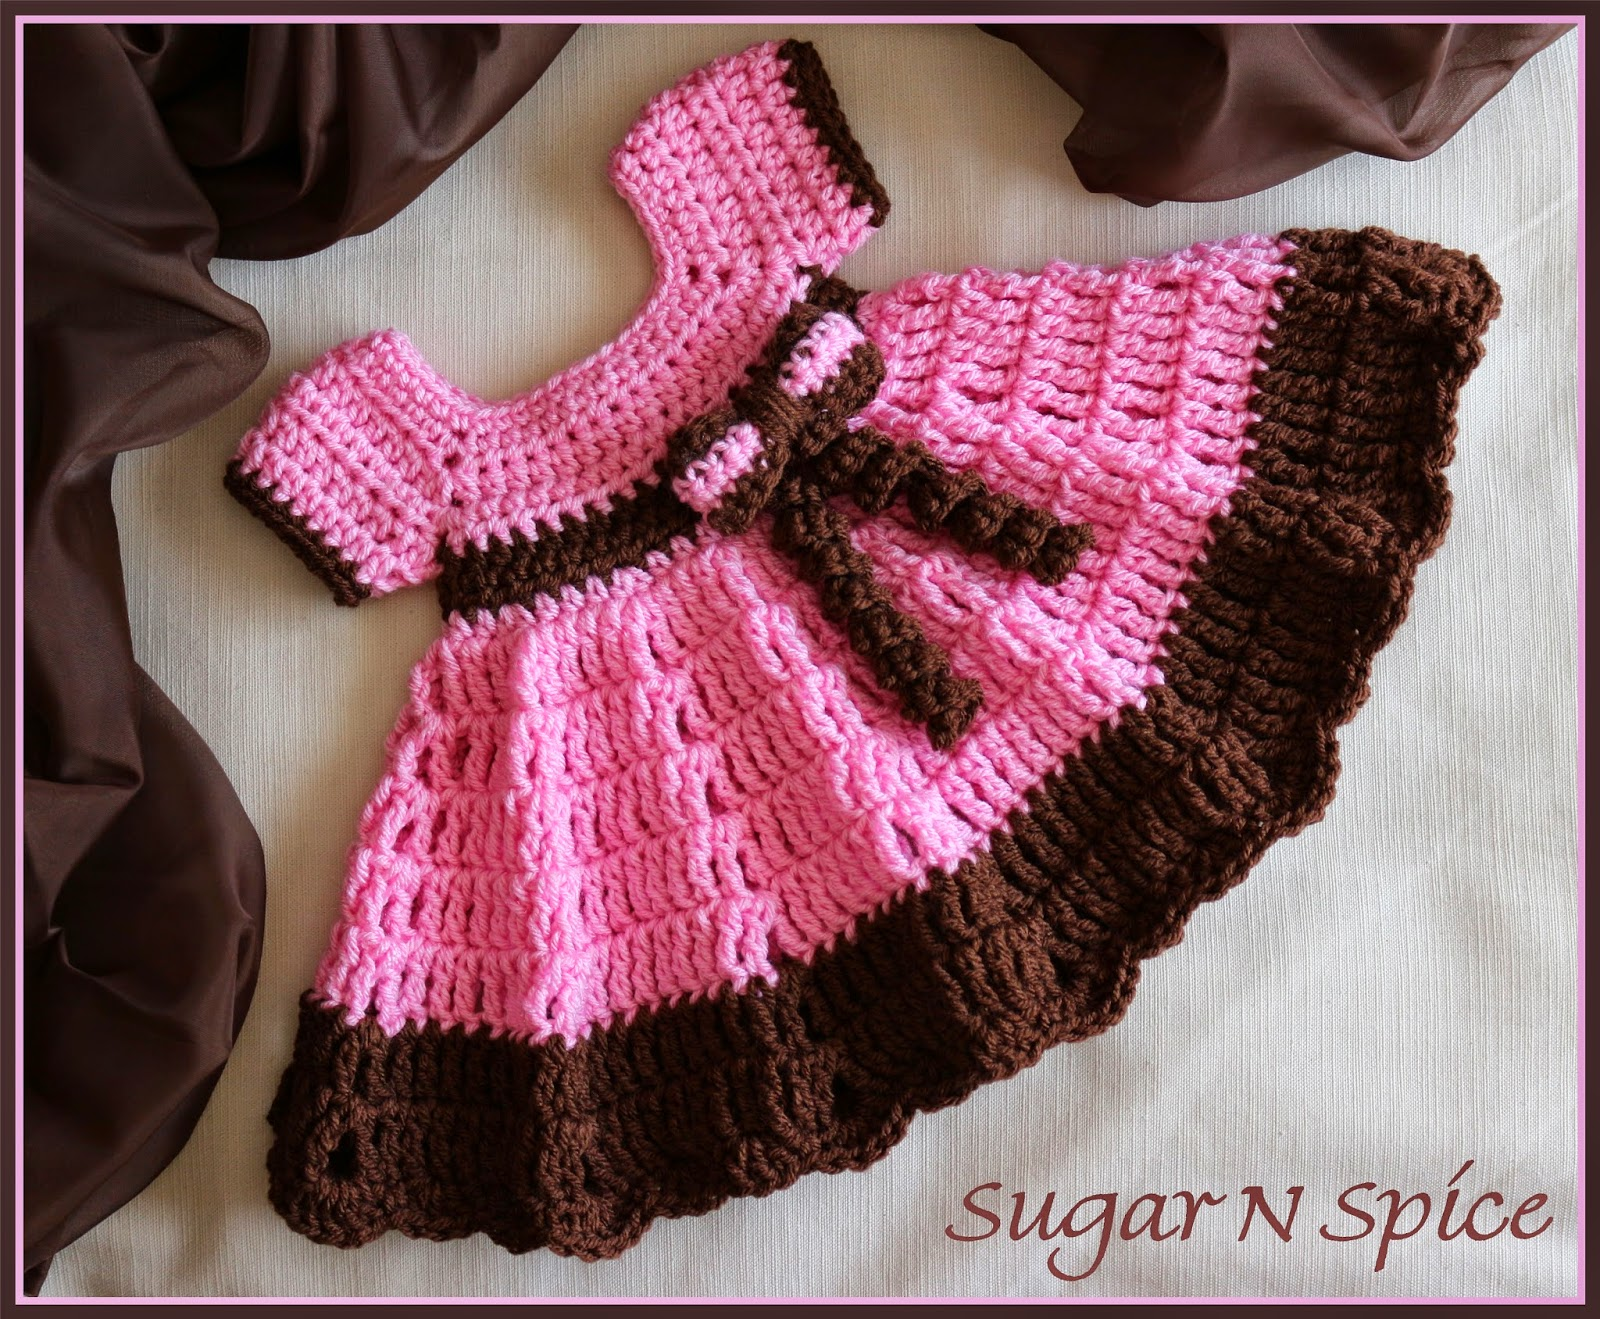 This Housewife Life: Sugar N Spice Dress ~FREE PATTERN~